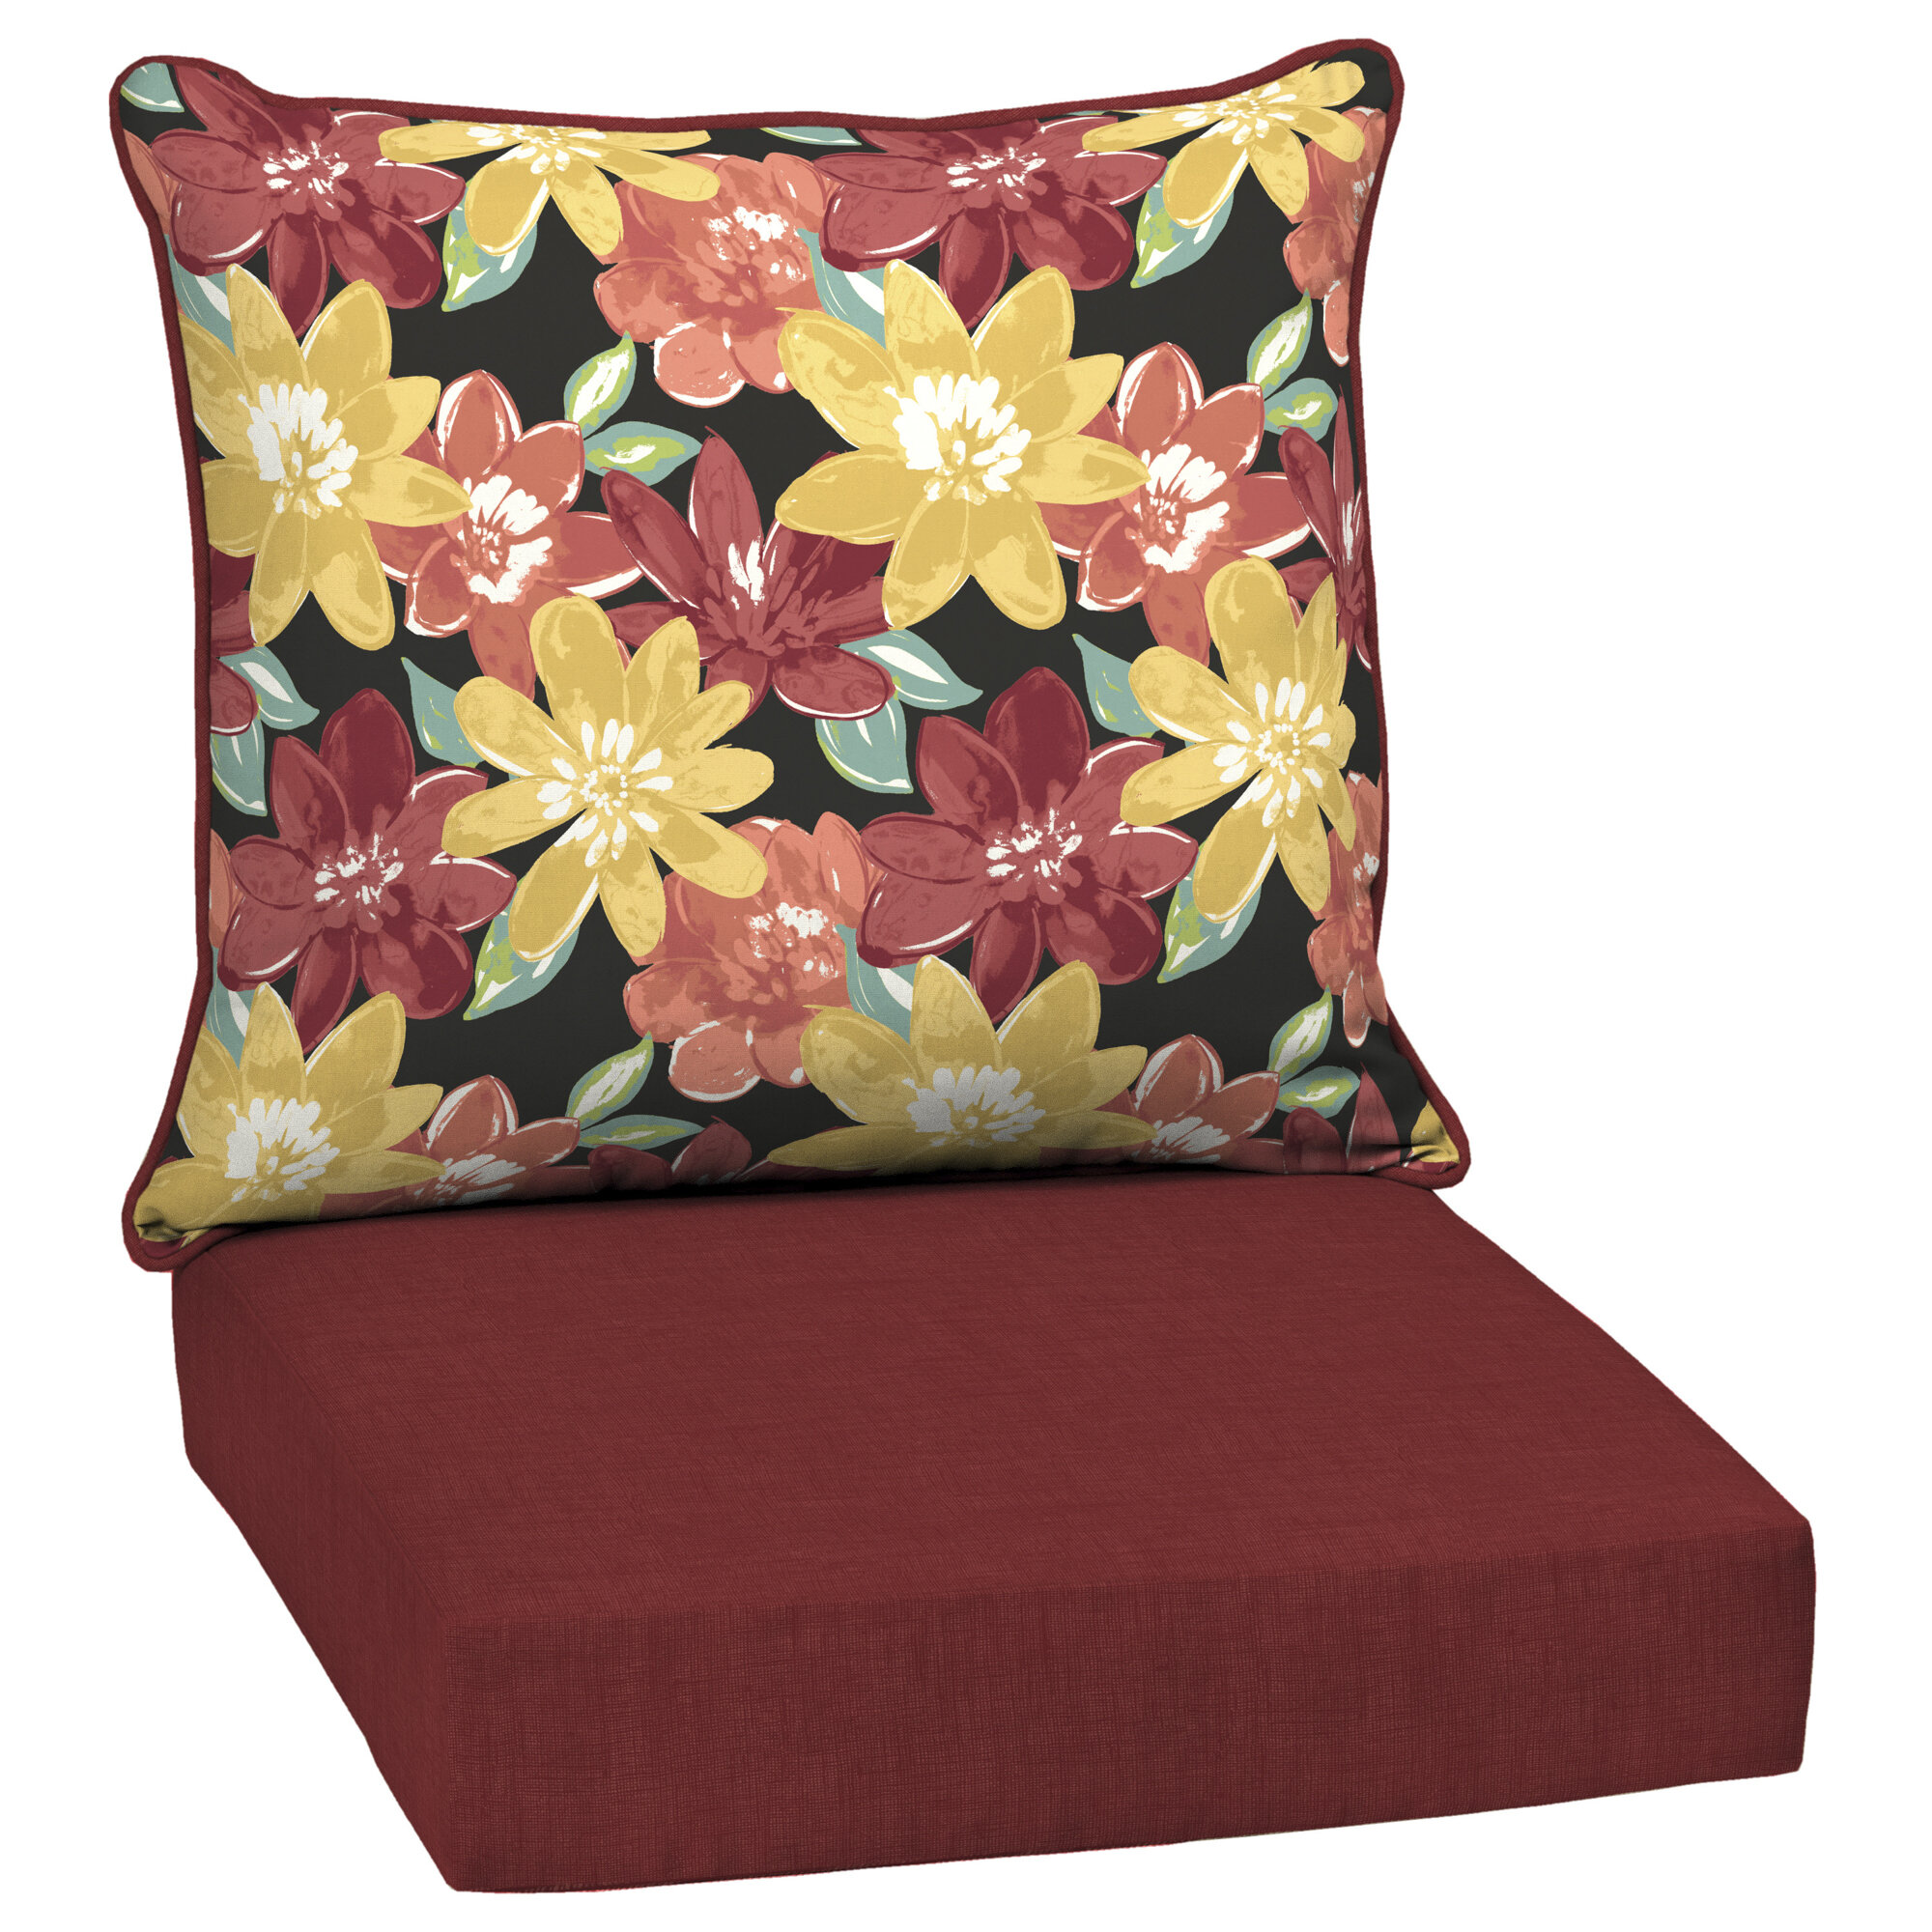 Wondrous Details About Red Barrel Studio Floral Outdoor Lounge Chair Cushion Dens1514 Squirreltailoven Fun Painted Chair Ideas Images Squirreltailovenorg